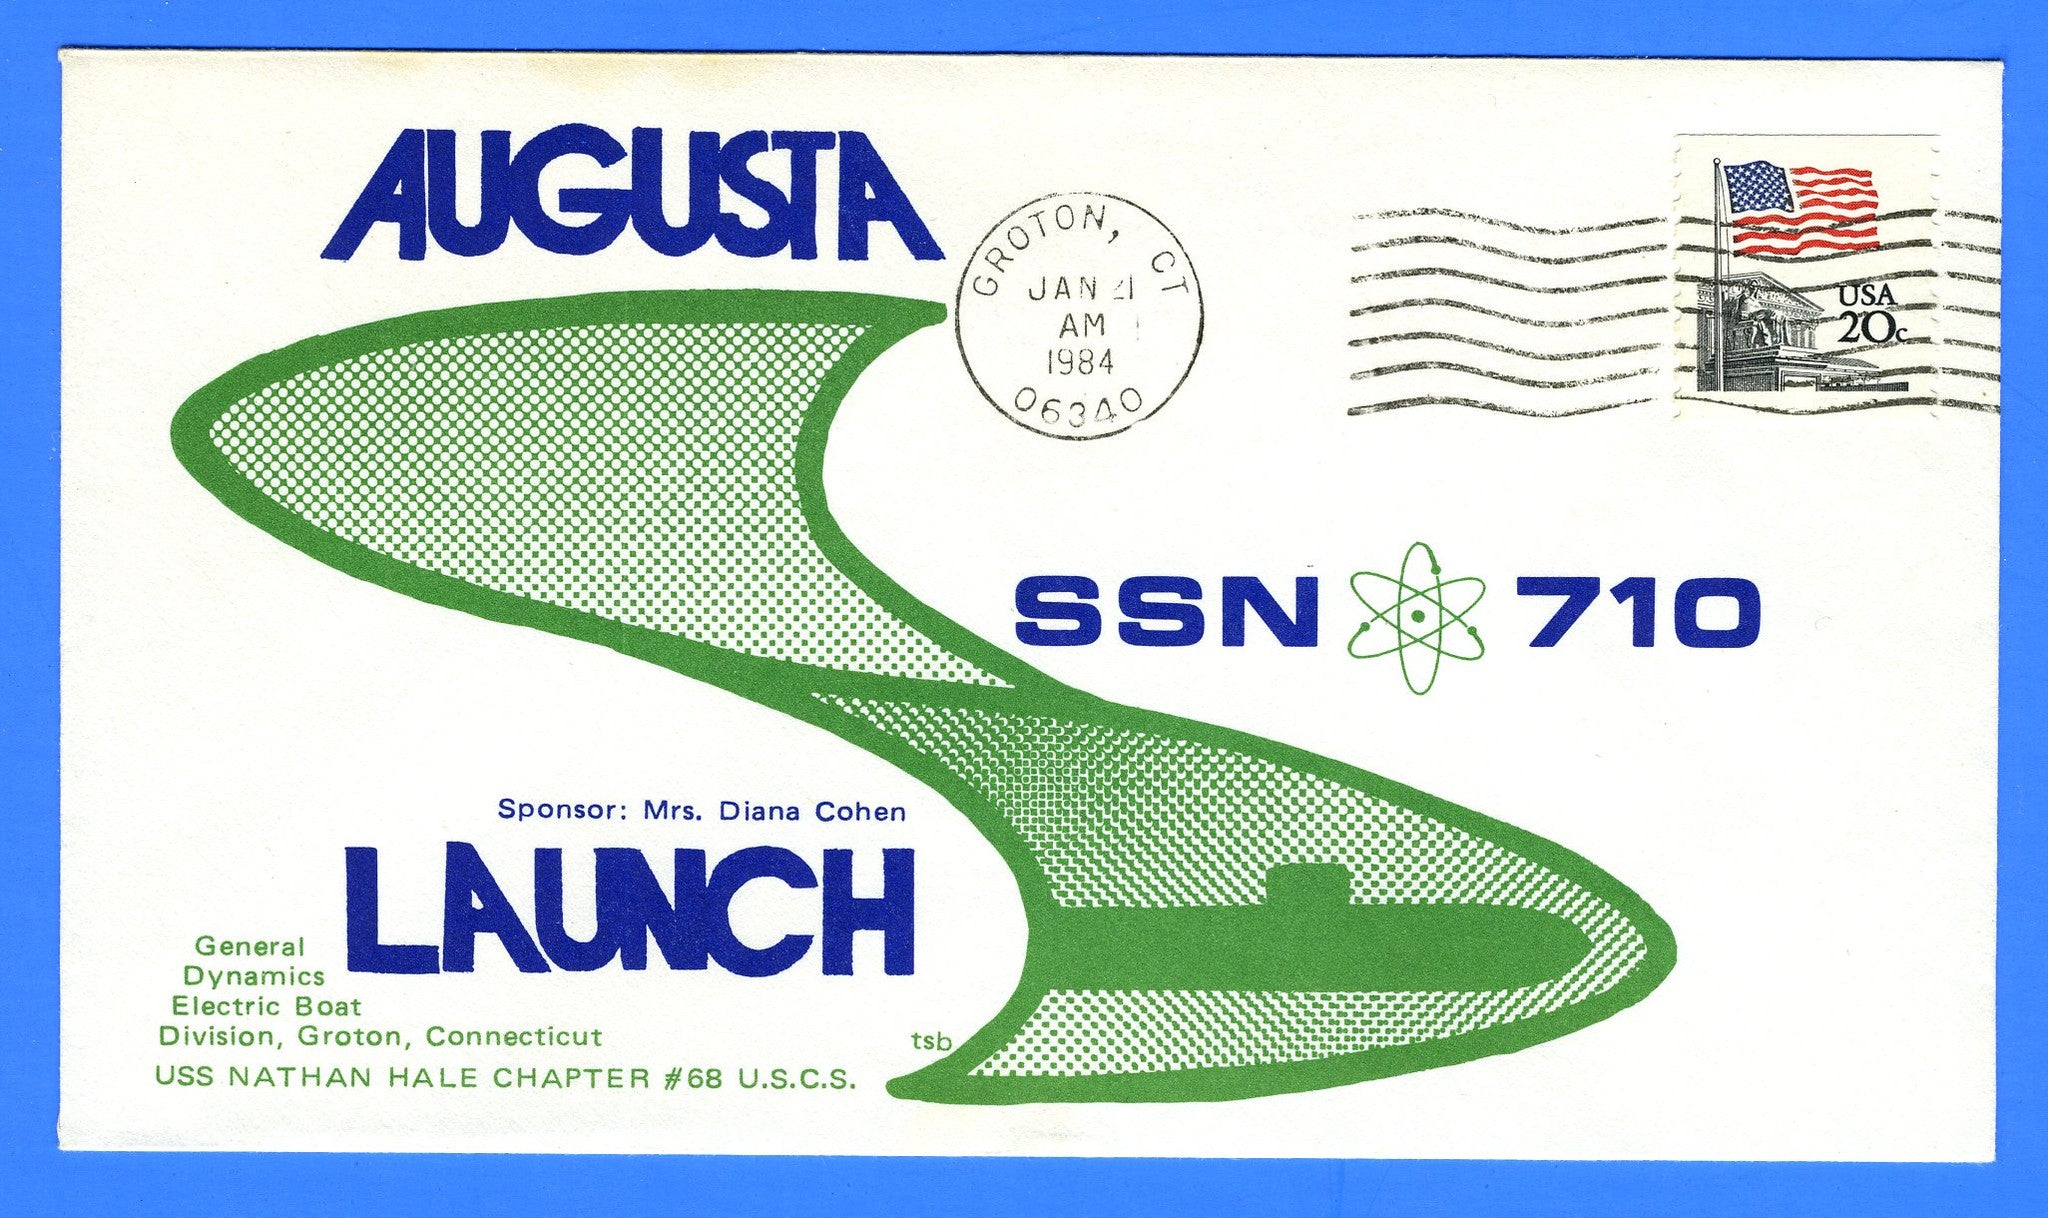 USS Augusta SSN-710 Launched January 21, 1984